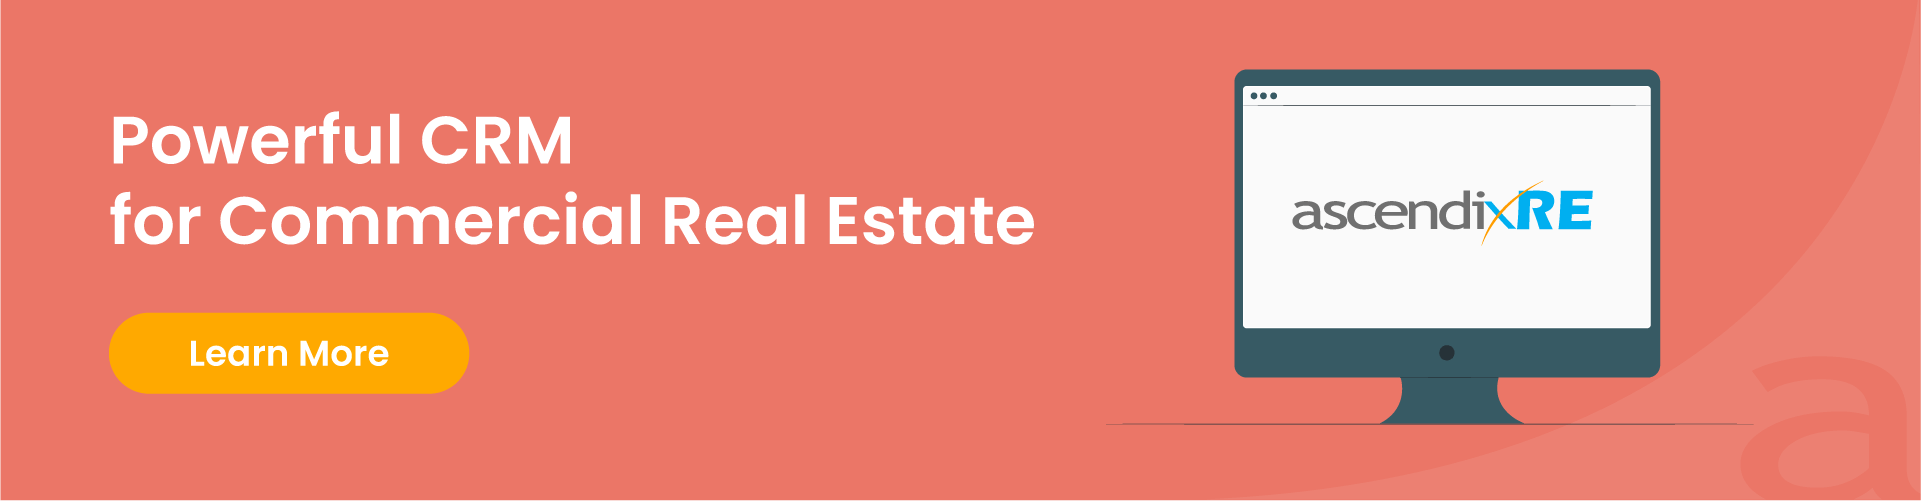 Powerful-CRM-for-Commercial-Real-Estate cta